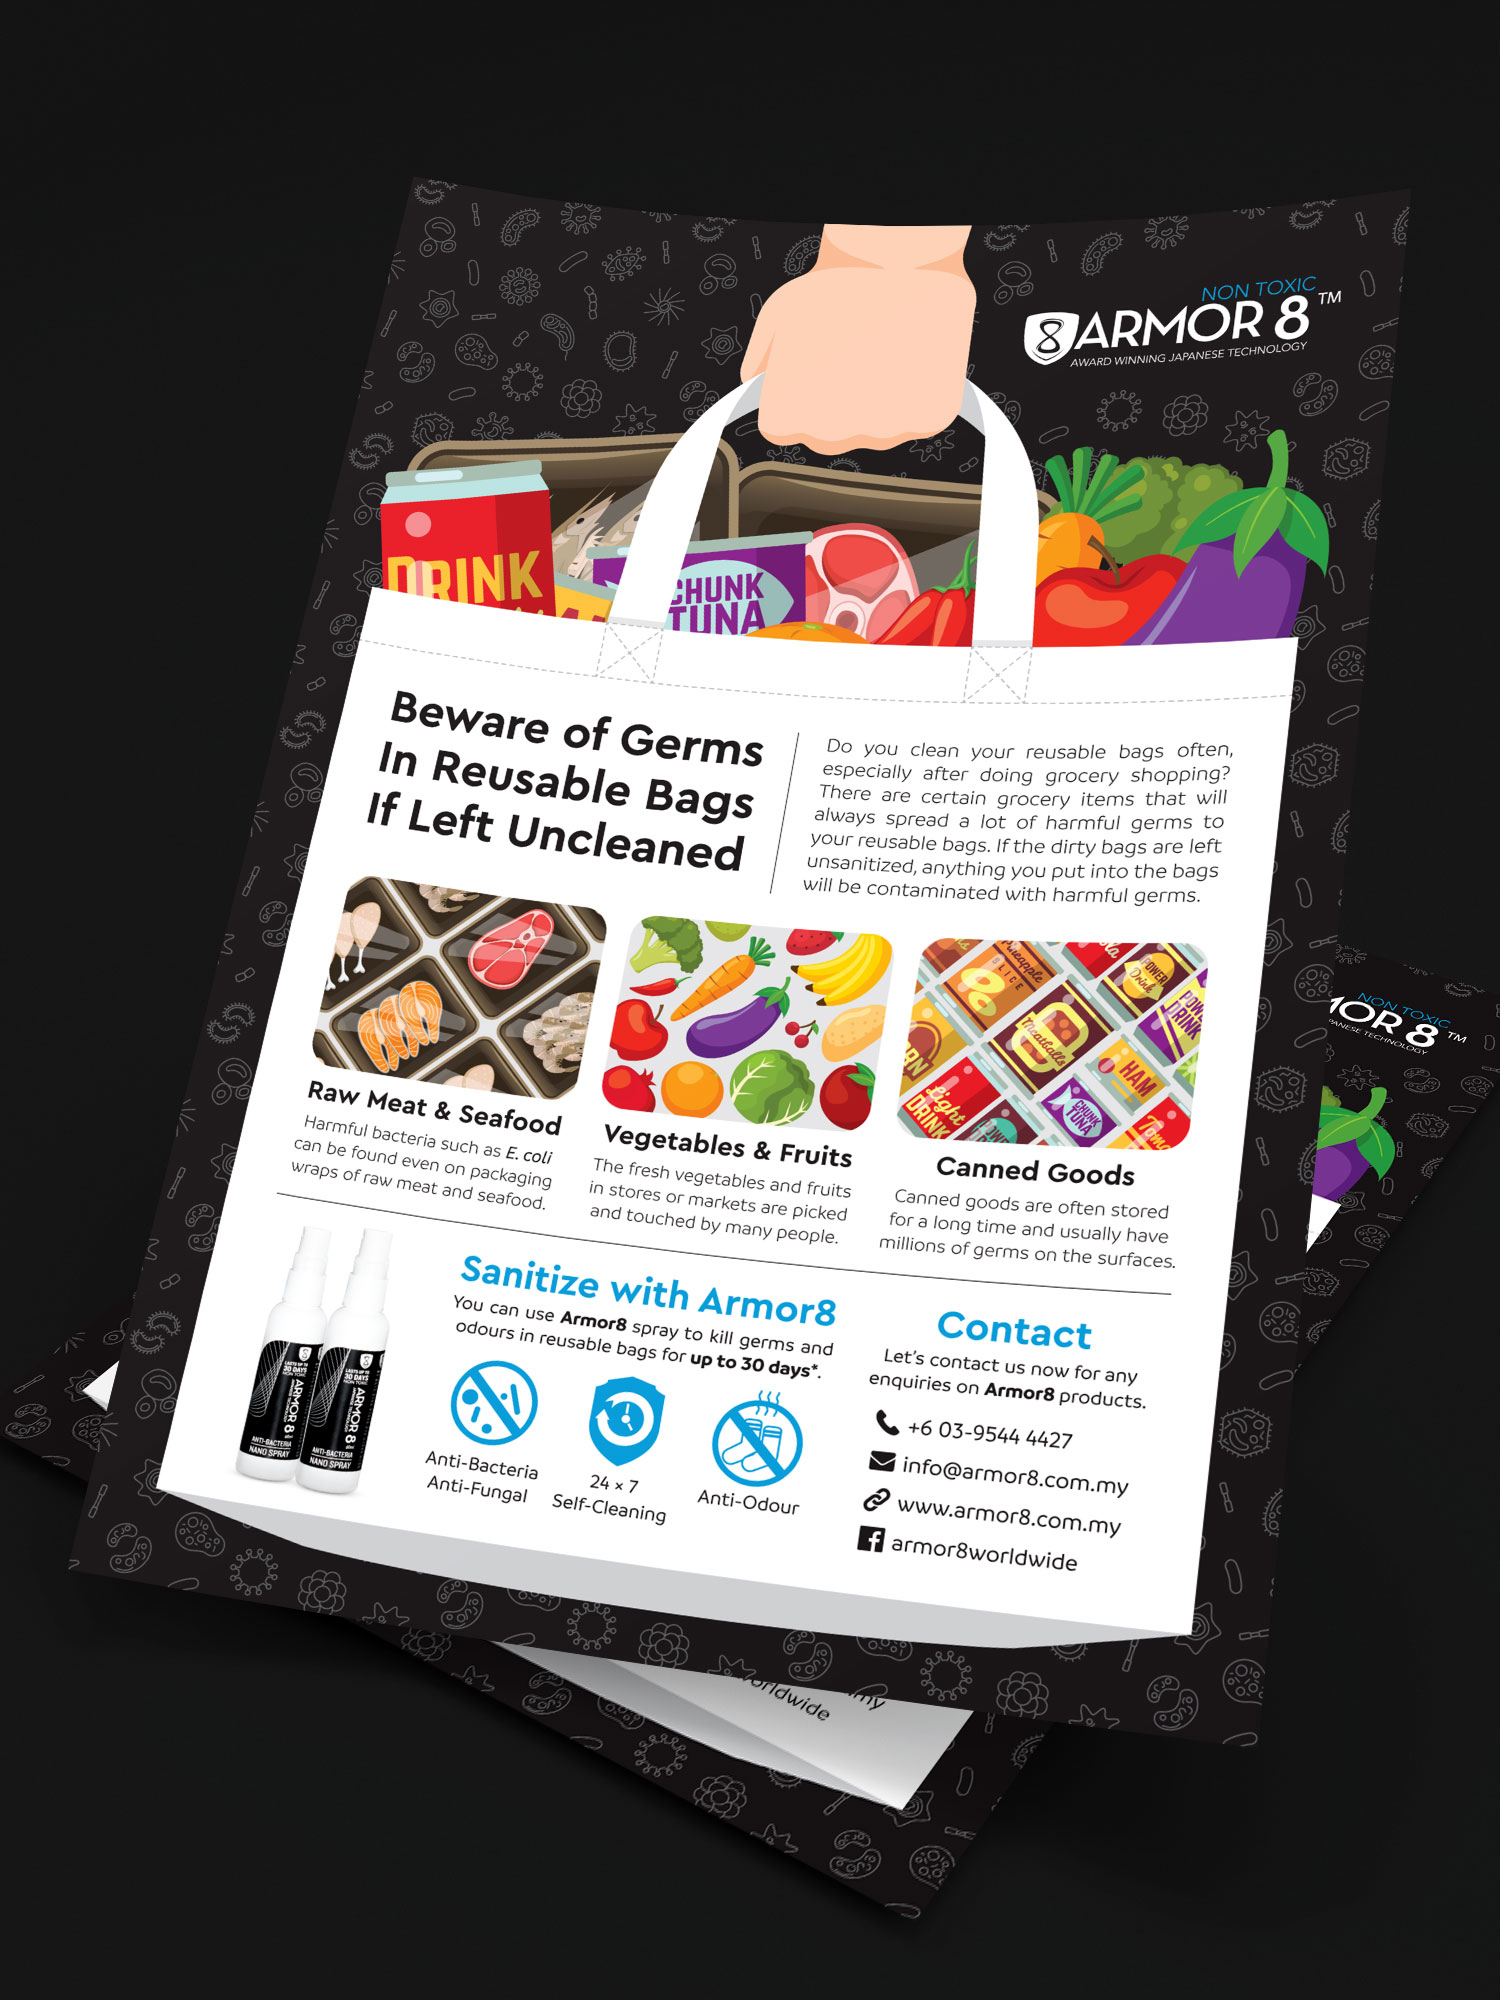 Armor8 Beware of Germs in Reusable Bags Flyer Design 02